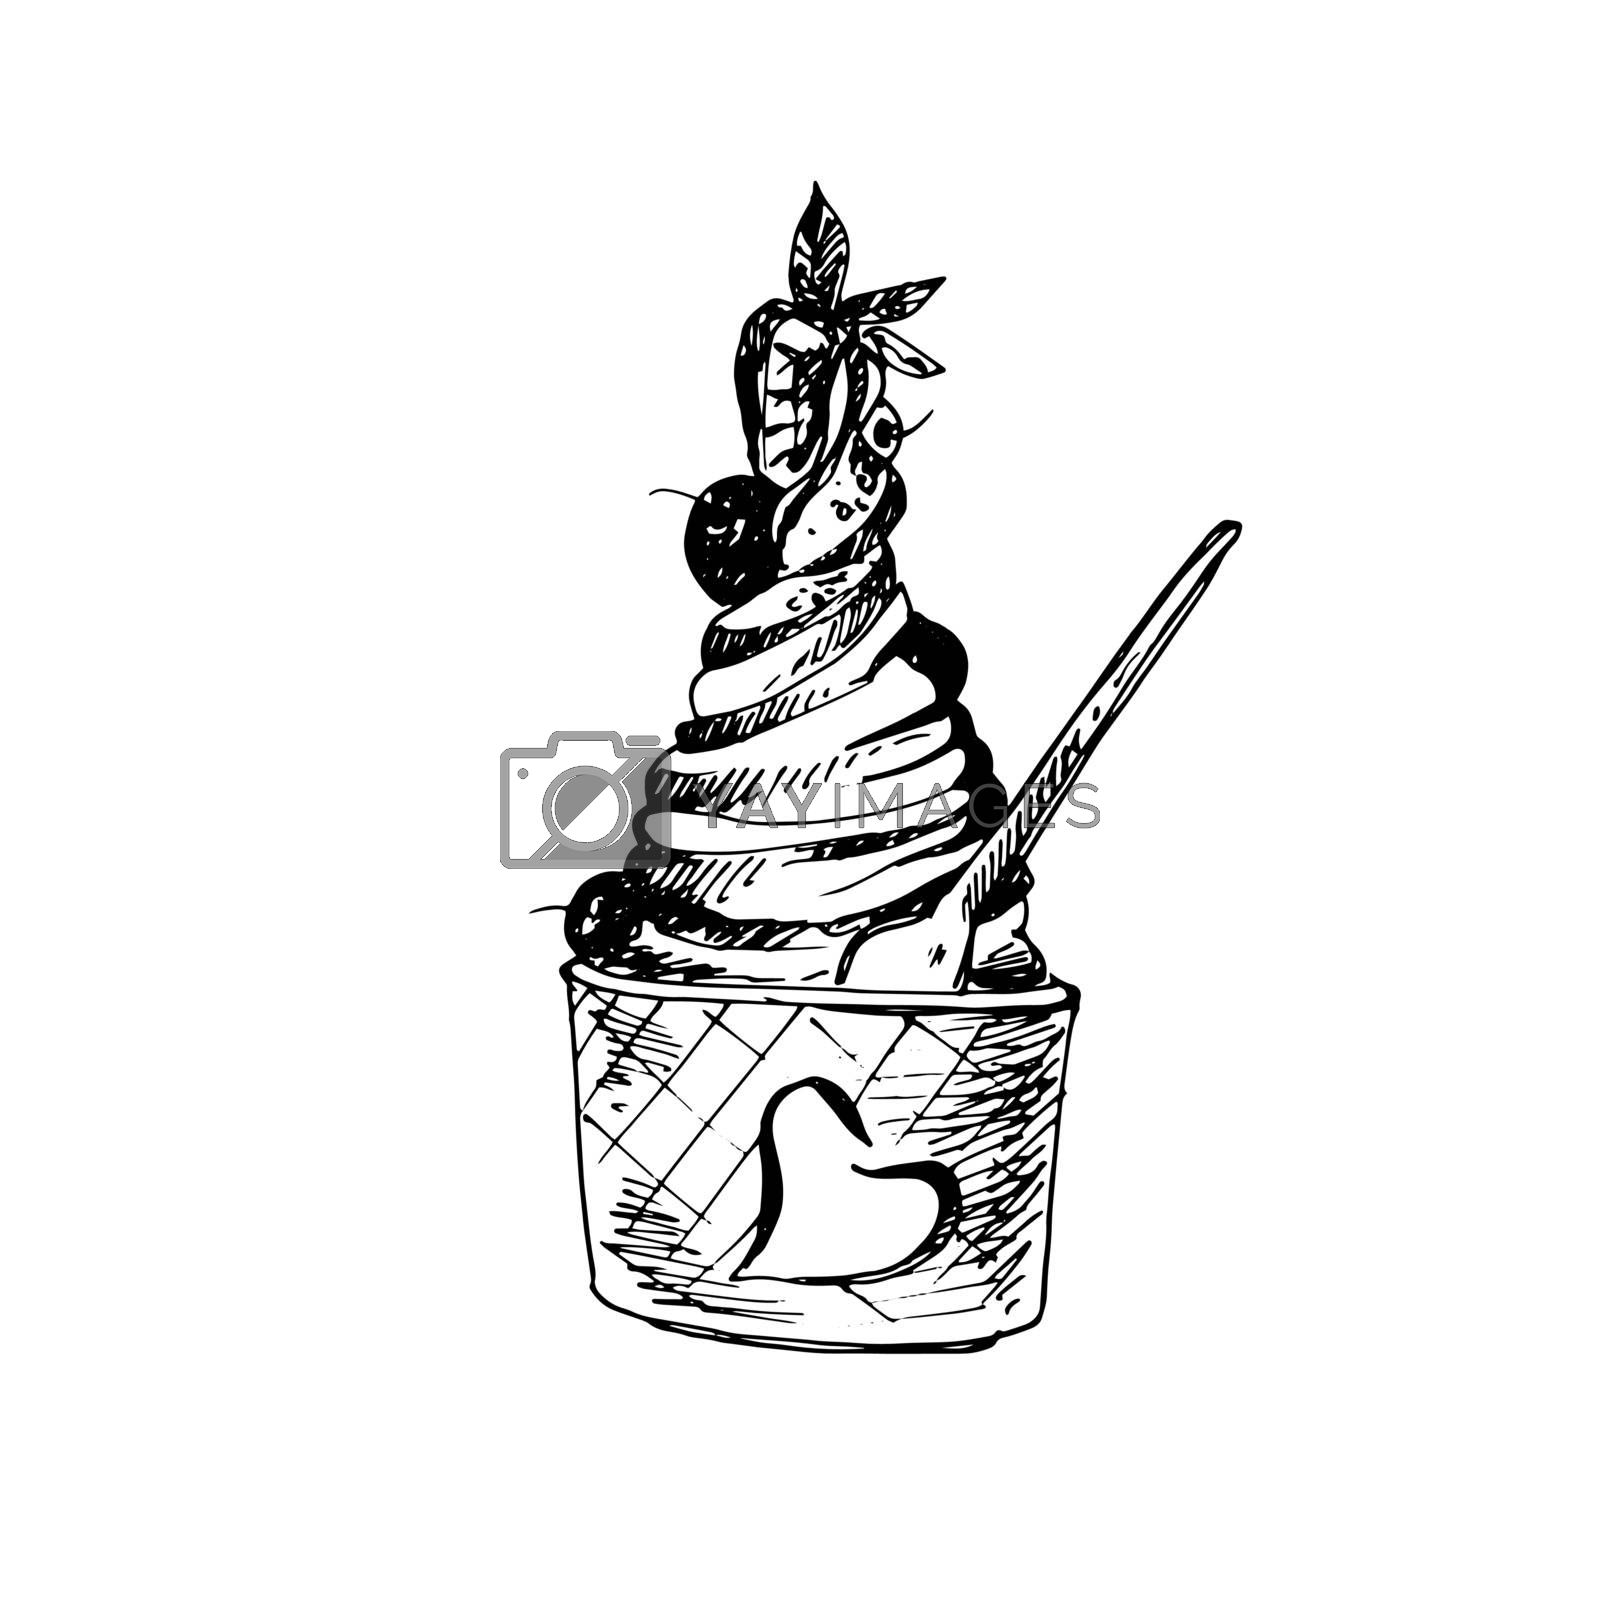 Hand Drawn Sketch of Ice Cream in Bowl. Great for Banner, Label, Poster